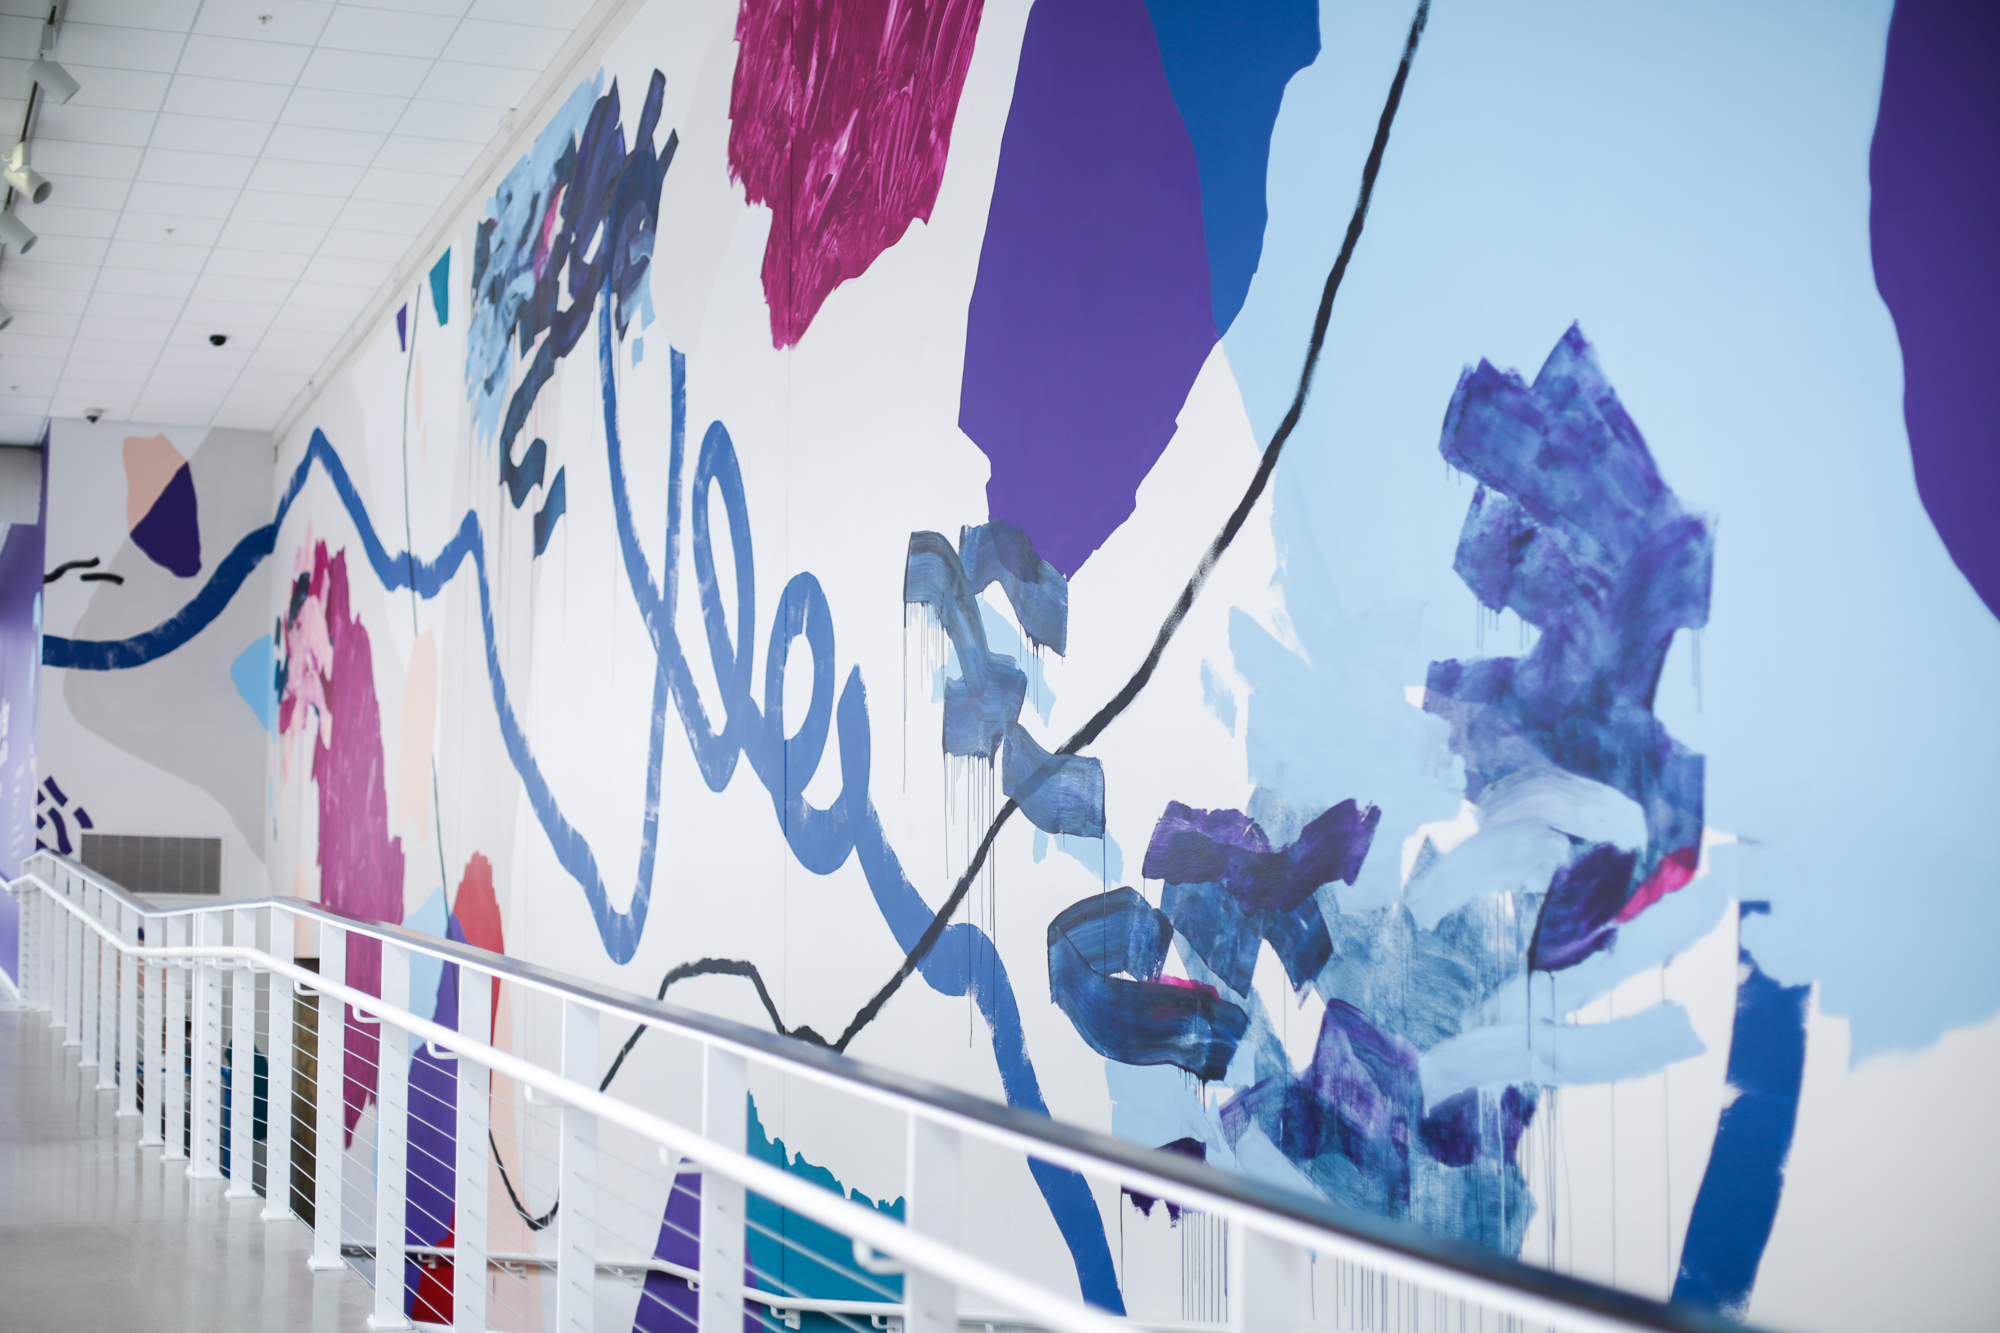 UICA Pantone Mural by Heather Day